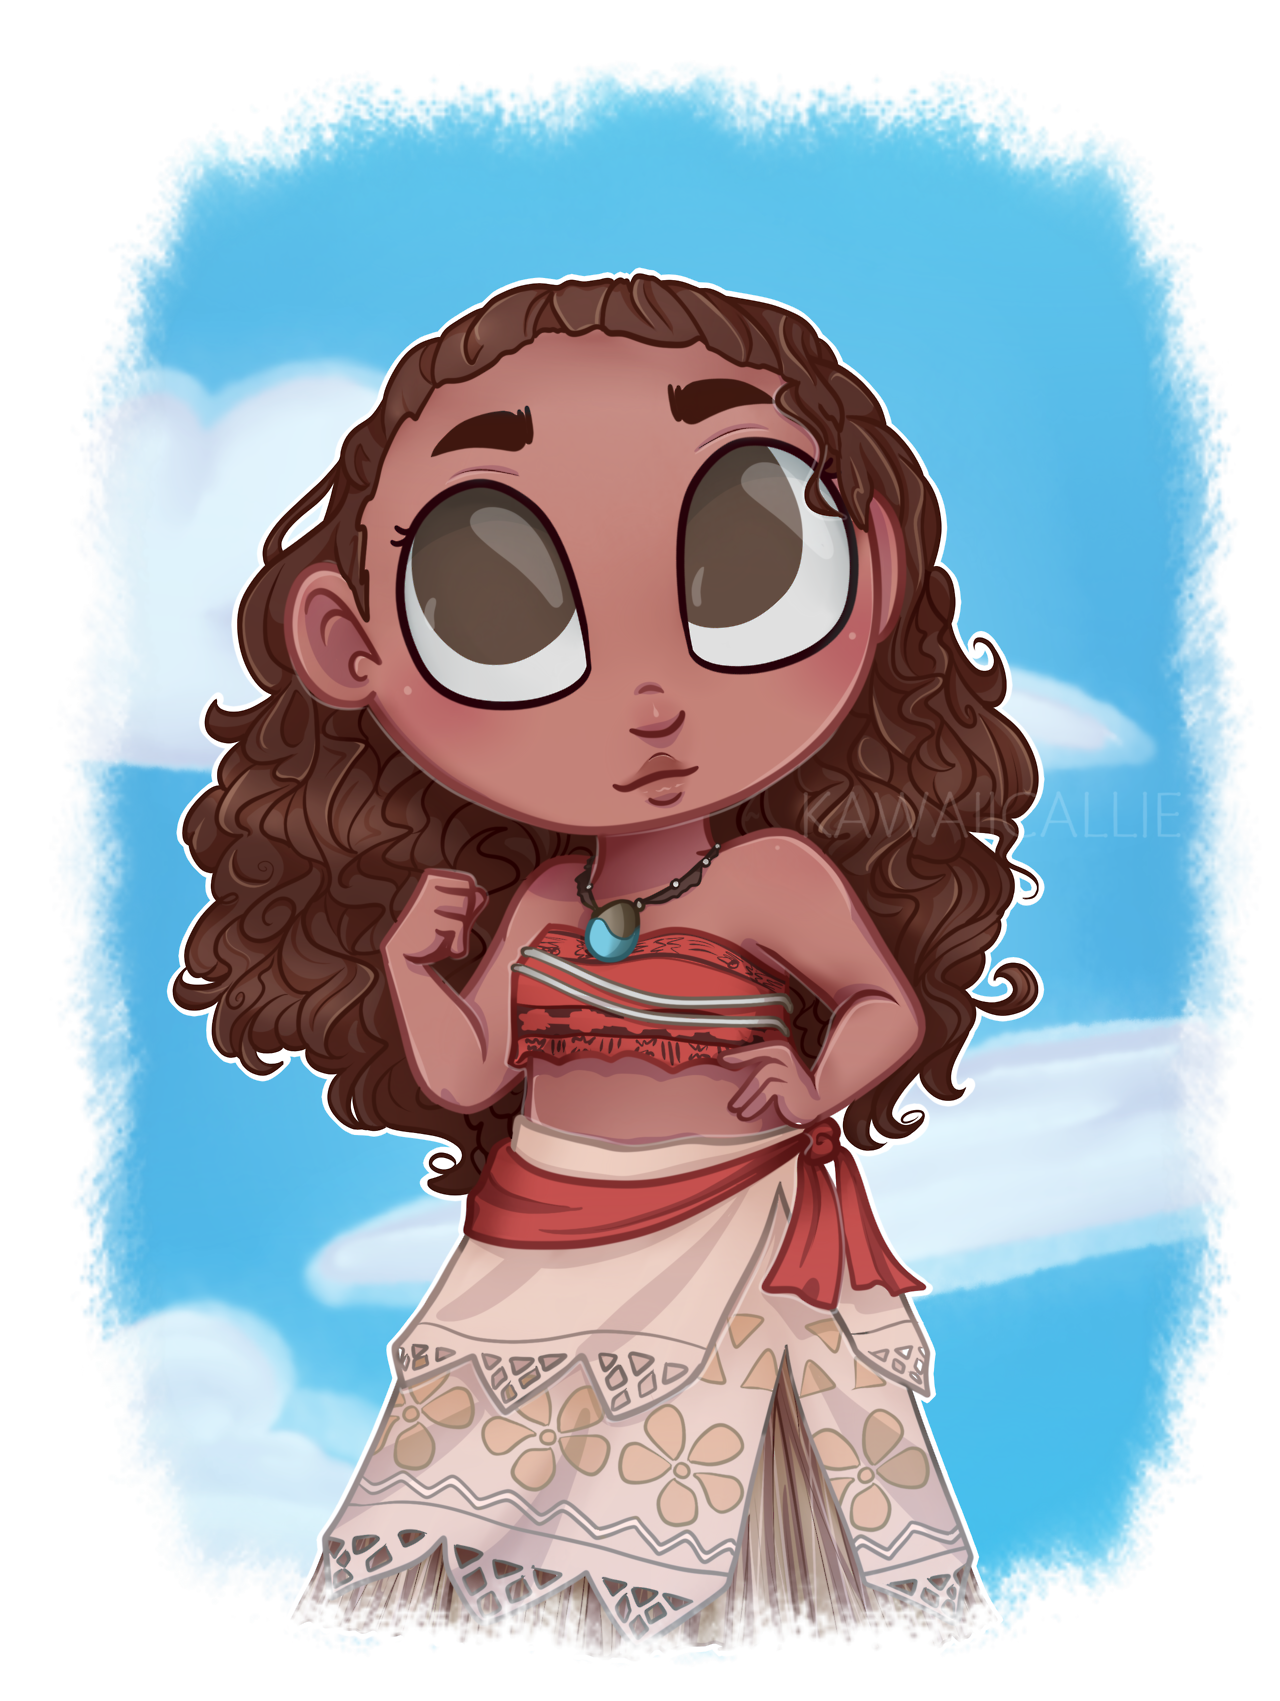 Drawing moana chibi. Disney movies characters pinterest